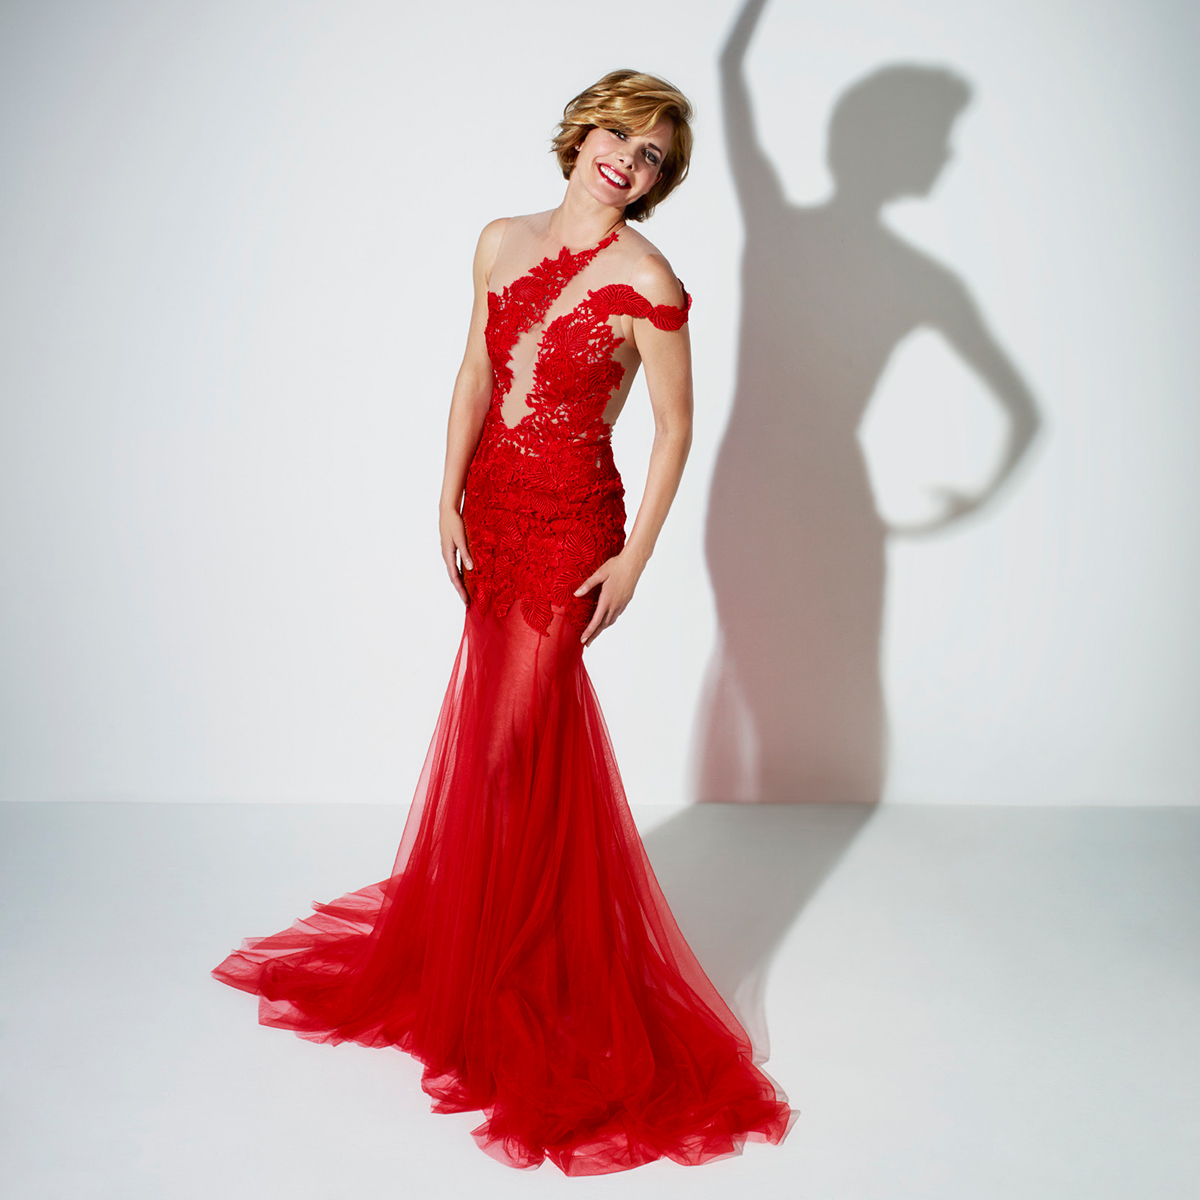 Watch Darcey Bussell Get Ready For Strictly Come Dancing